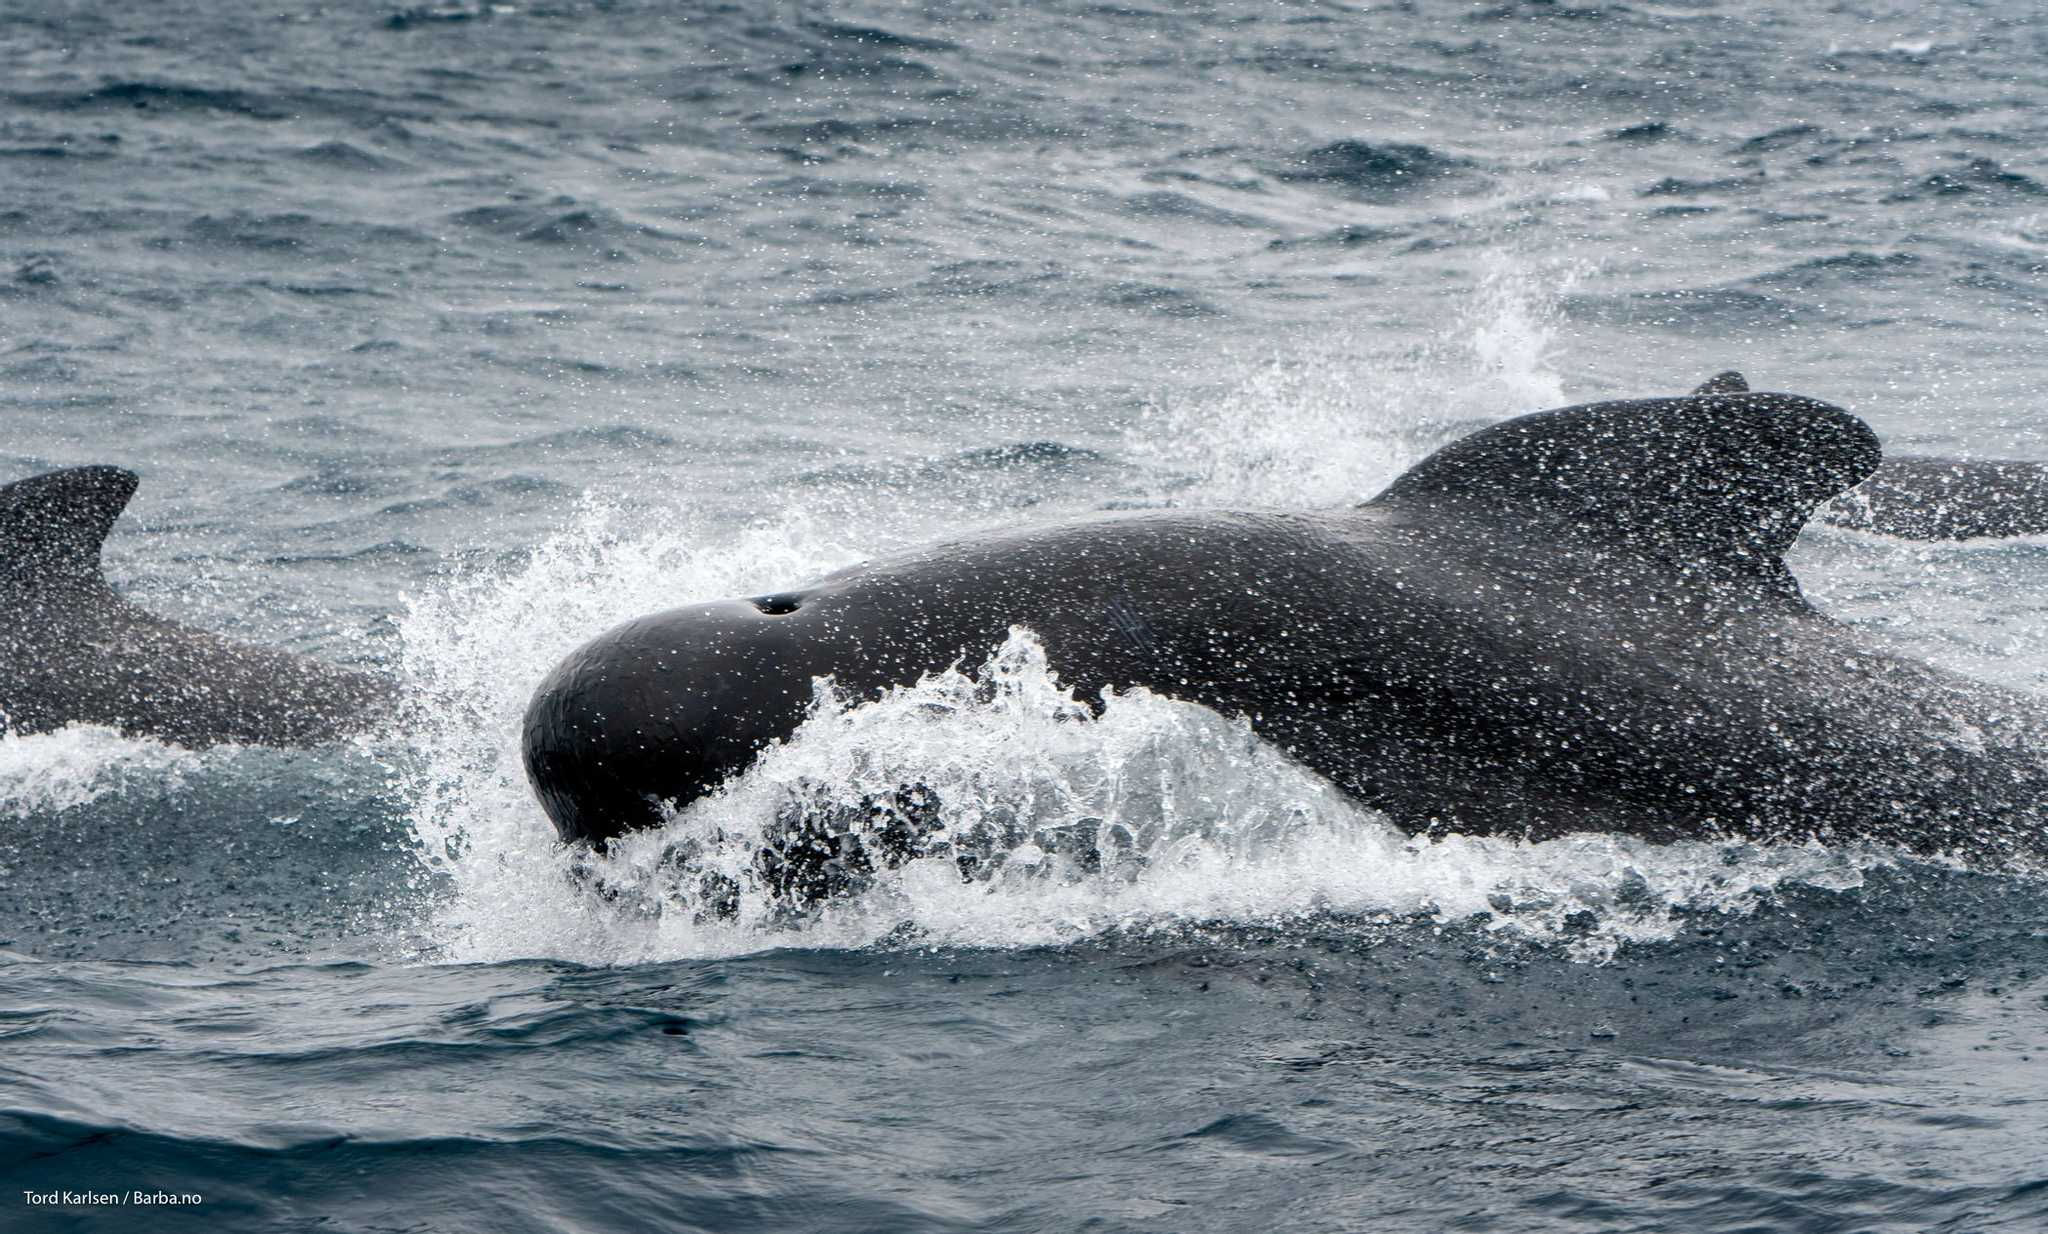 The distinct backwards swept fin of a pilot whale. They reach up to 7,6 meters in length weighing up to 3800 kgs. They are highly social and operate in pods counting over 100 individuals. Photo: Tord Karlsen / Barba.no